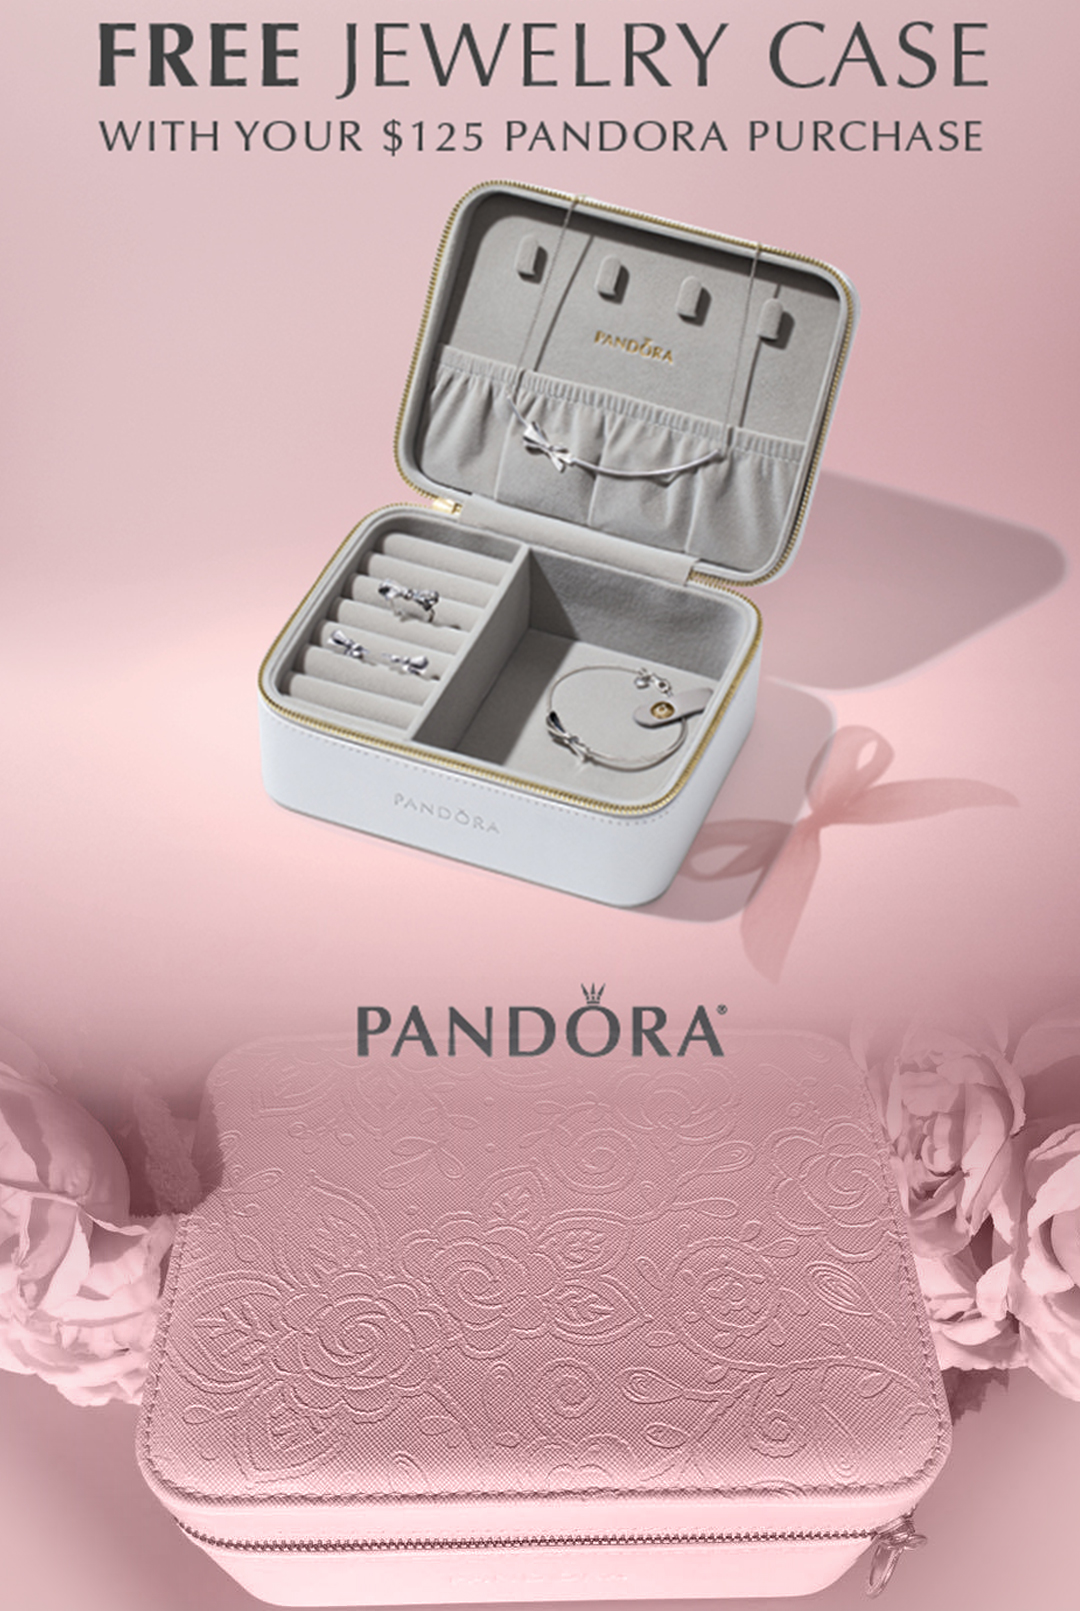 FREE Jewelry Case with your $125 PANDORA Purchase! — The Diamond Center: Where Wisconsin Gets Engaged